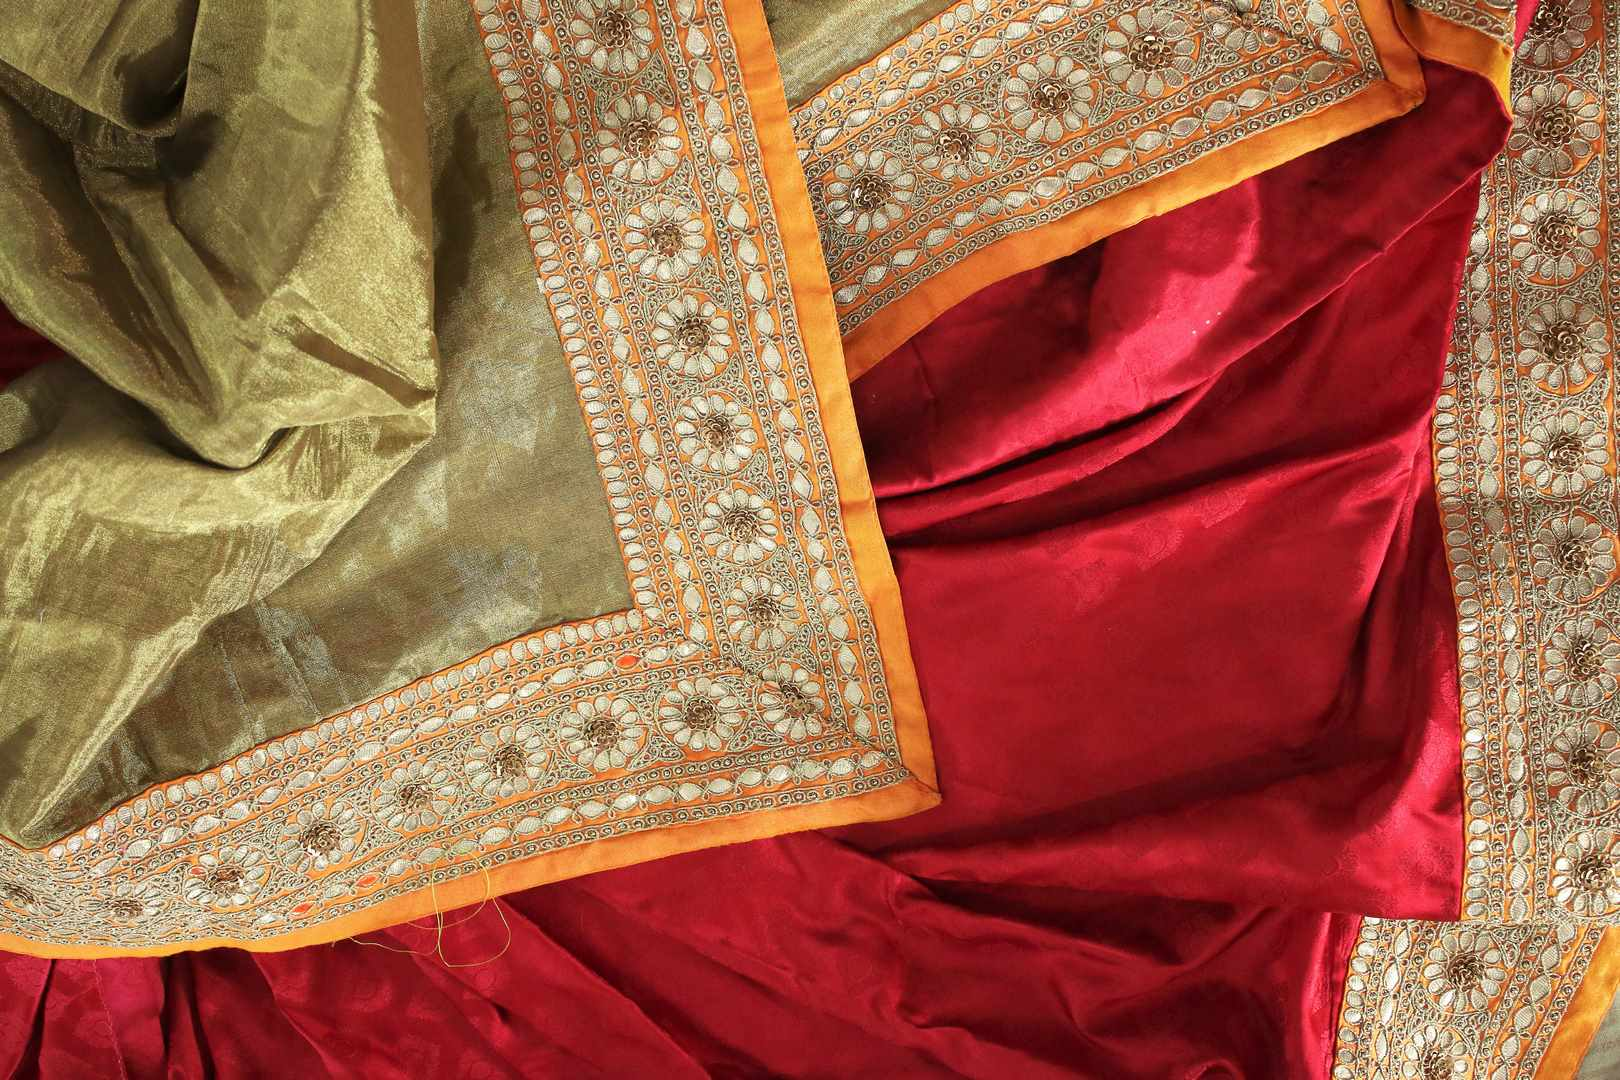 Buy red Banarasi silk saree with yellow border online in USA. It comes with a gorgeous yellow embroidered blouse and a stunning embroidered border.Make your Indian clothing collection exquisite with beautiful Indian designer sarees, Banarasi sarees available at Pure Elegance clothing store in USA or shop online.-details